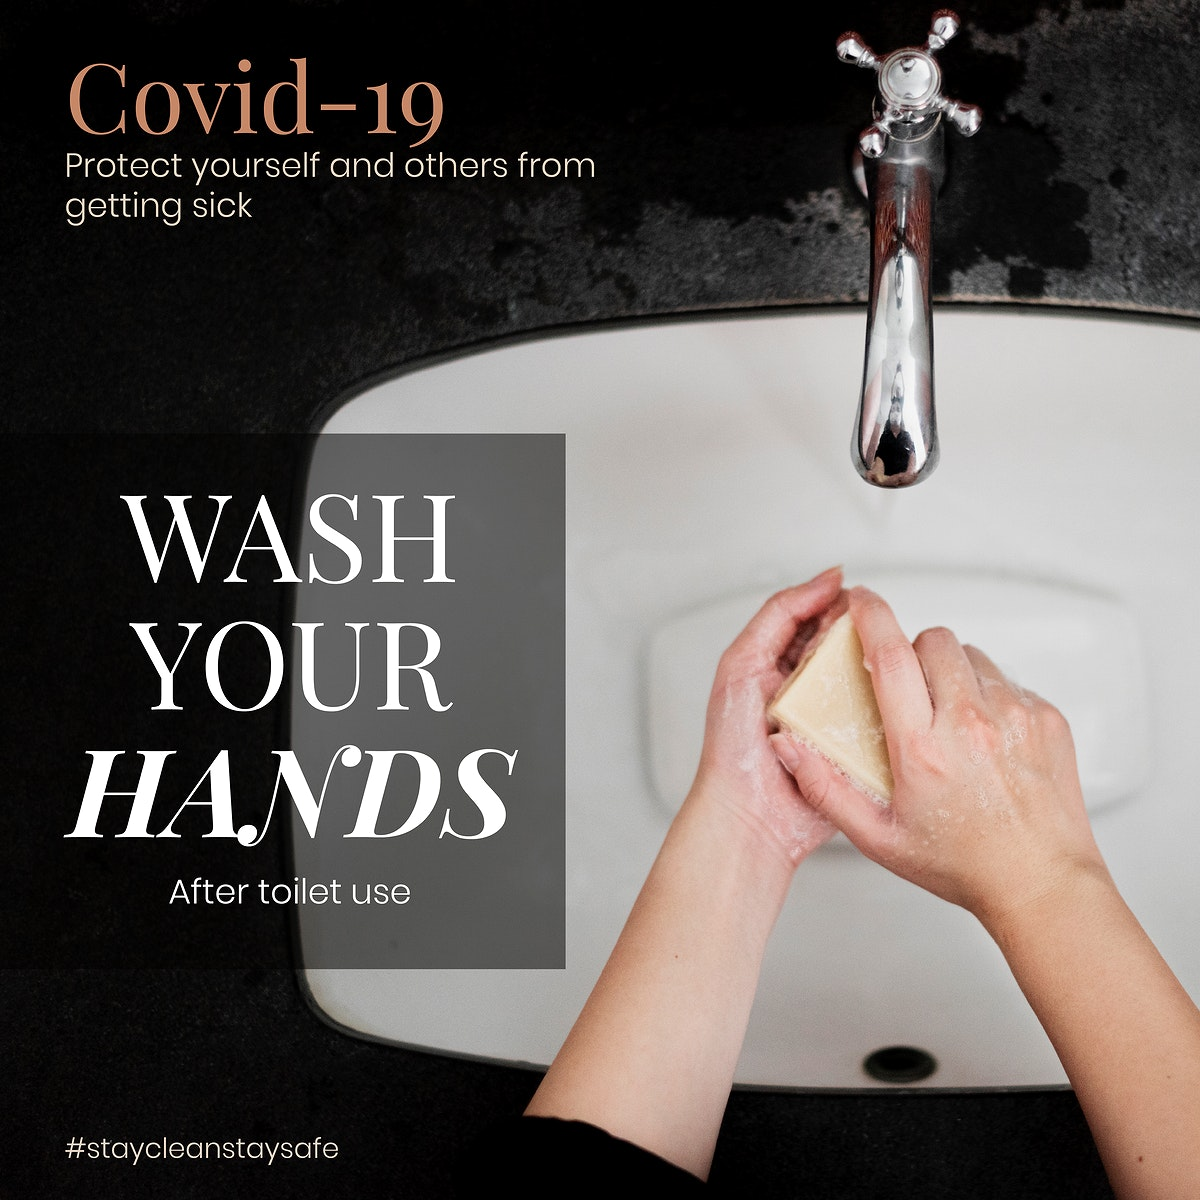 Wash your hands after toilet use to protect yourself and others from getting sick from COVID-19 social template vector